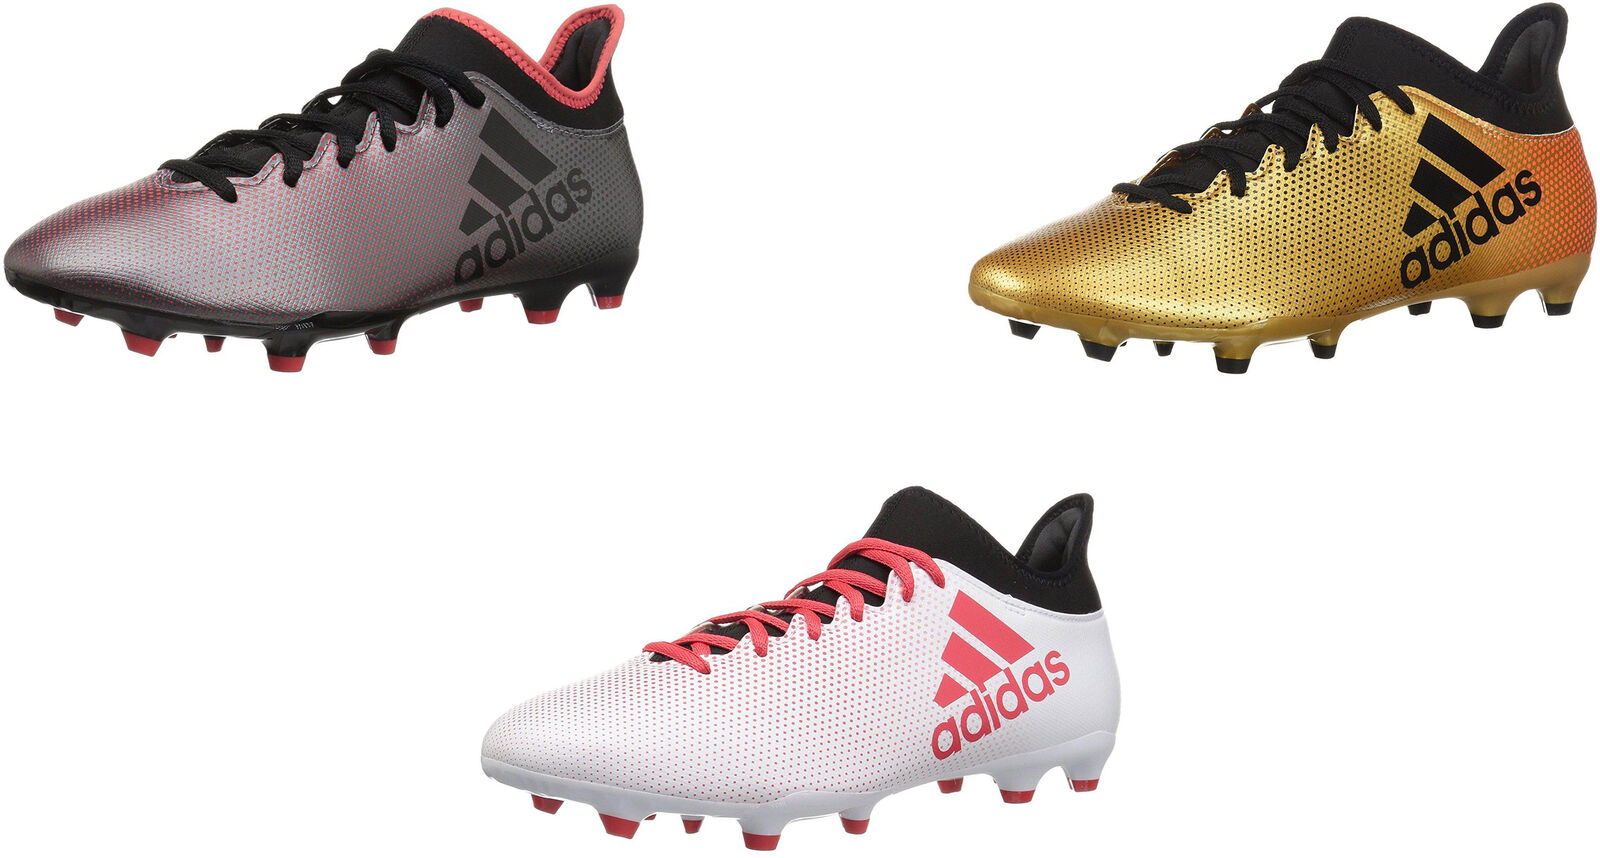 adidas Men's X Cleats, 17.3 Firm Ground Soccer Cleats, X 3 Colors 4df286